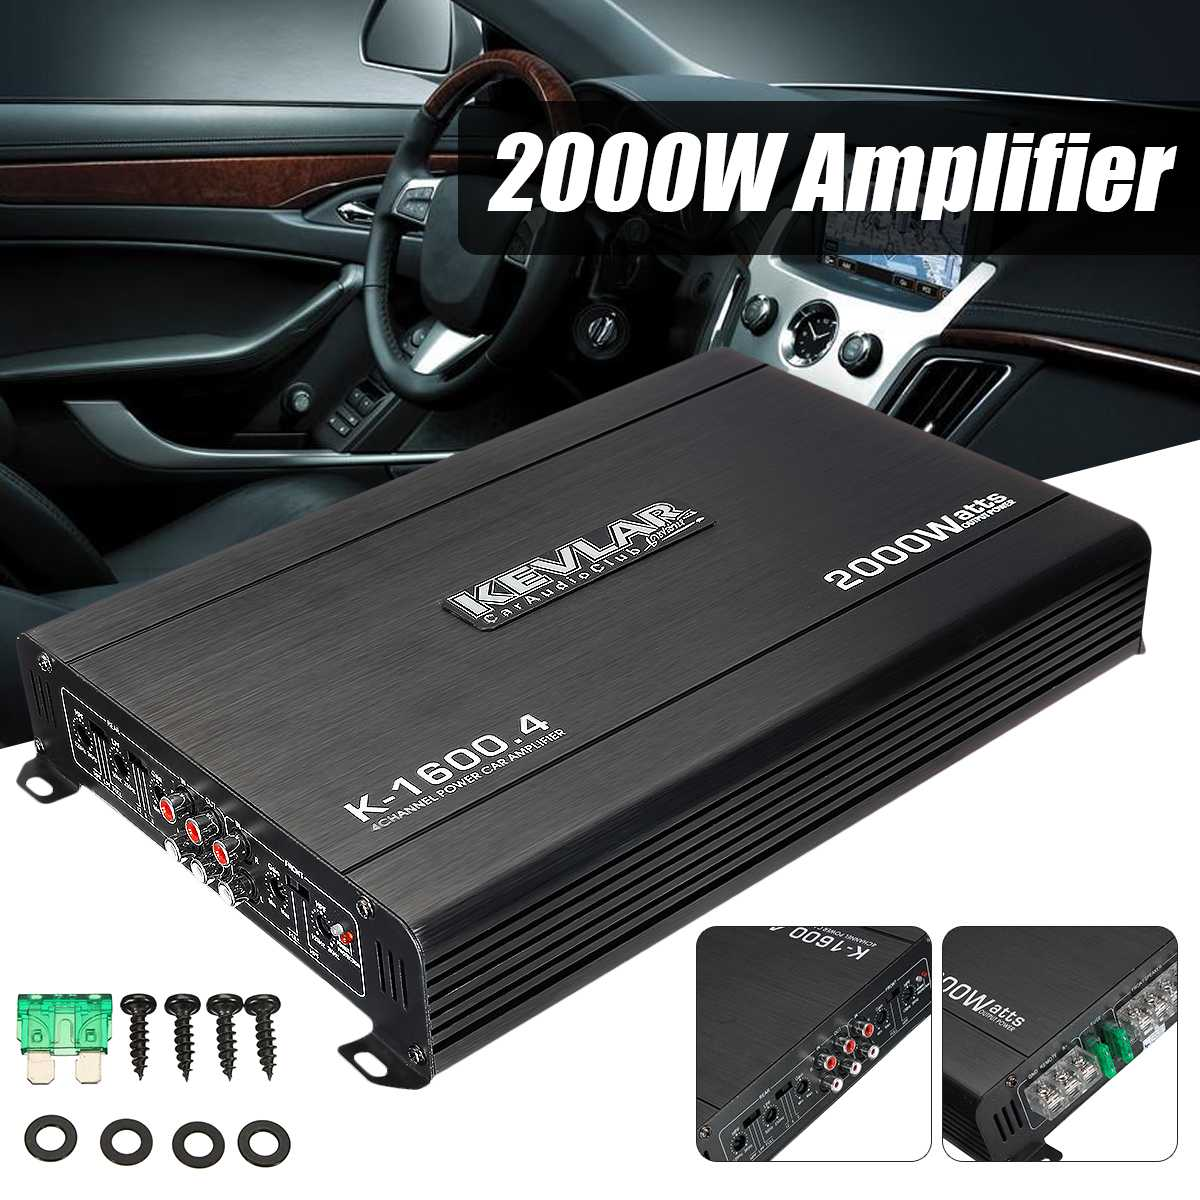 2000W 4 Channel Car Amplifier Speaker Vehicle Amplifier Power Stereo Amp Auto Audio Power Amplifier Car Audio Amplifier